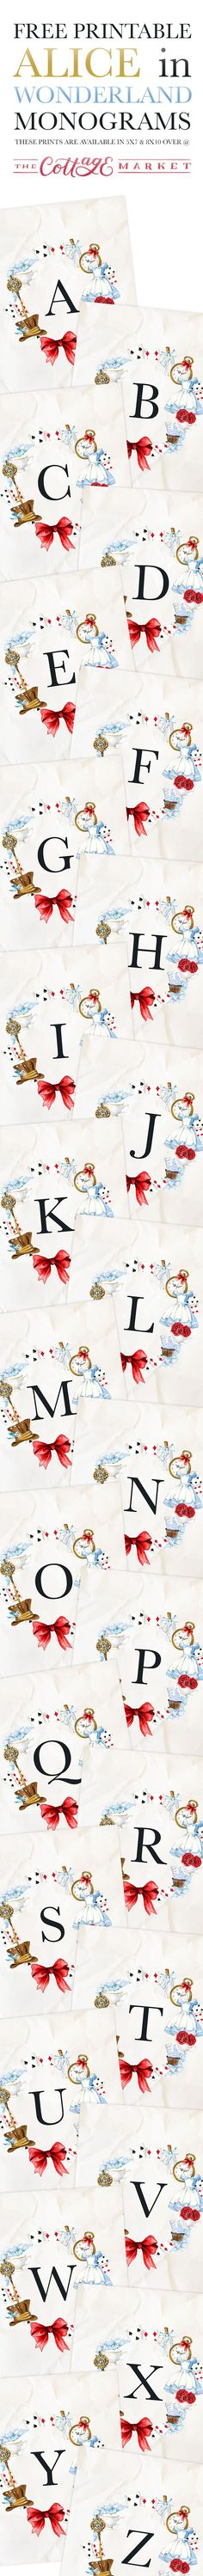 Hello everyone!  It's FRIDAY and that means one thing here at The Cottage Market…it's FREE PRINTABLE Day!!!  Attention Alice In Wonderland Lovers …We have a brand new Free Printable Alice In Wonderland Monograms for you today that will add some Whimsical Fun to your home!!!  Free Printable Alice in Wonderland Monograms plus Numbers and Punctuation so you …